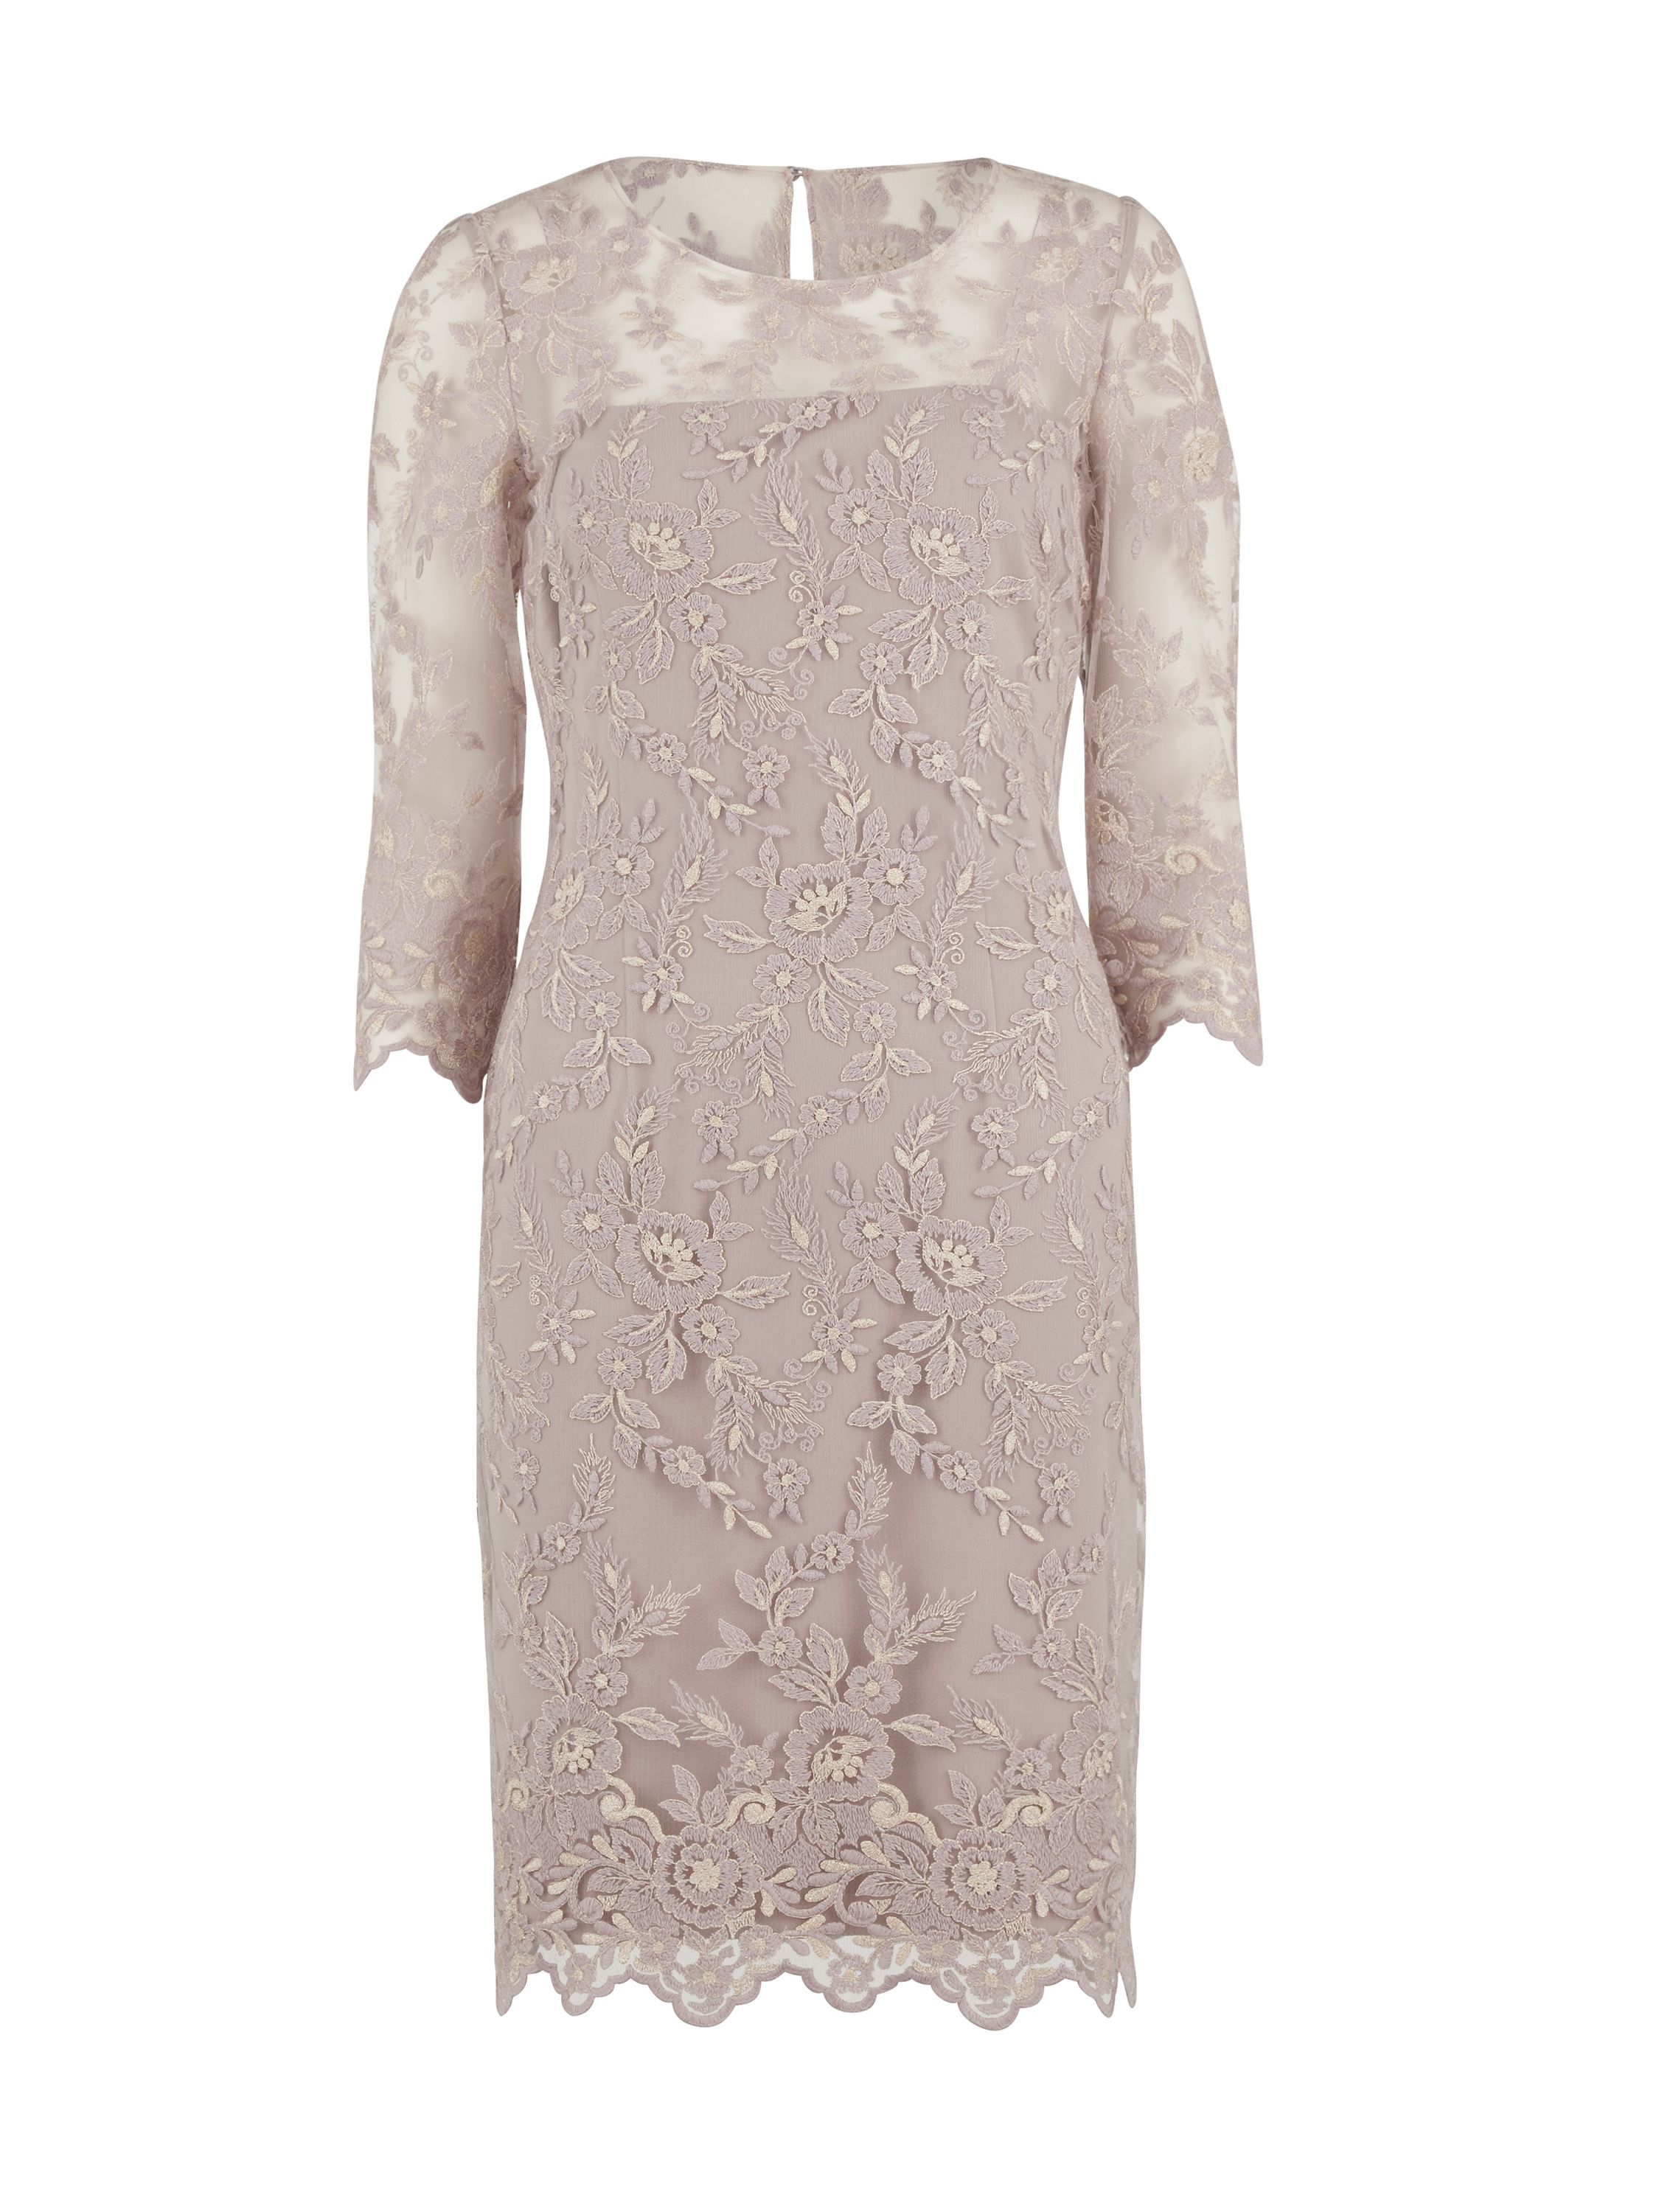 Gina Bacconi Antique Embroidered Net Dress, Pink